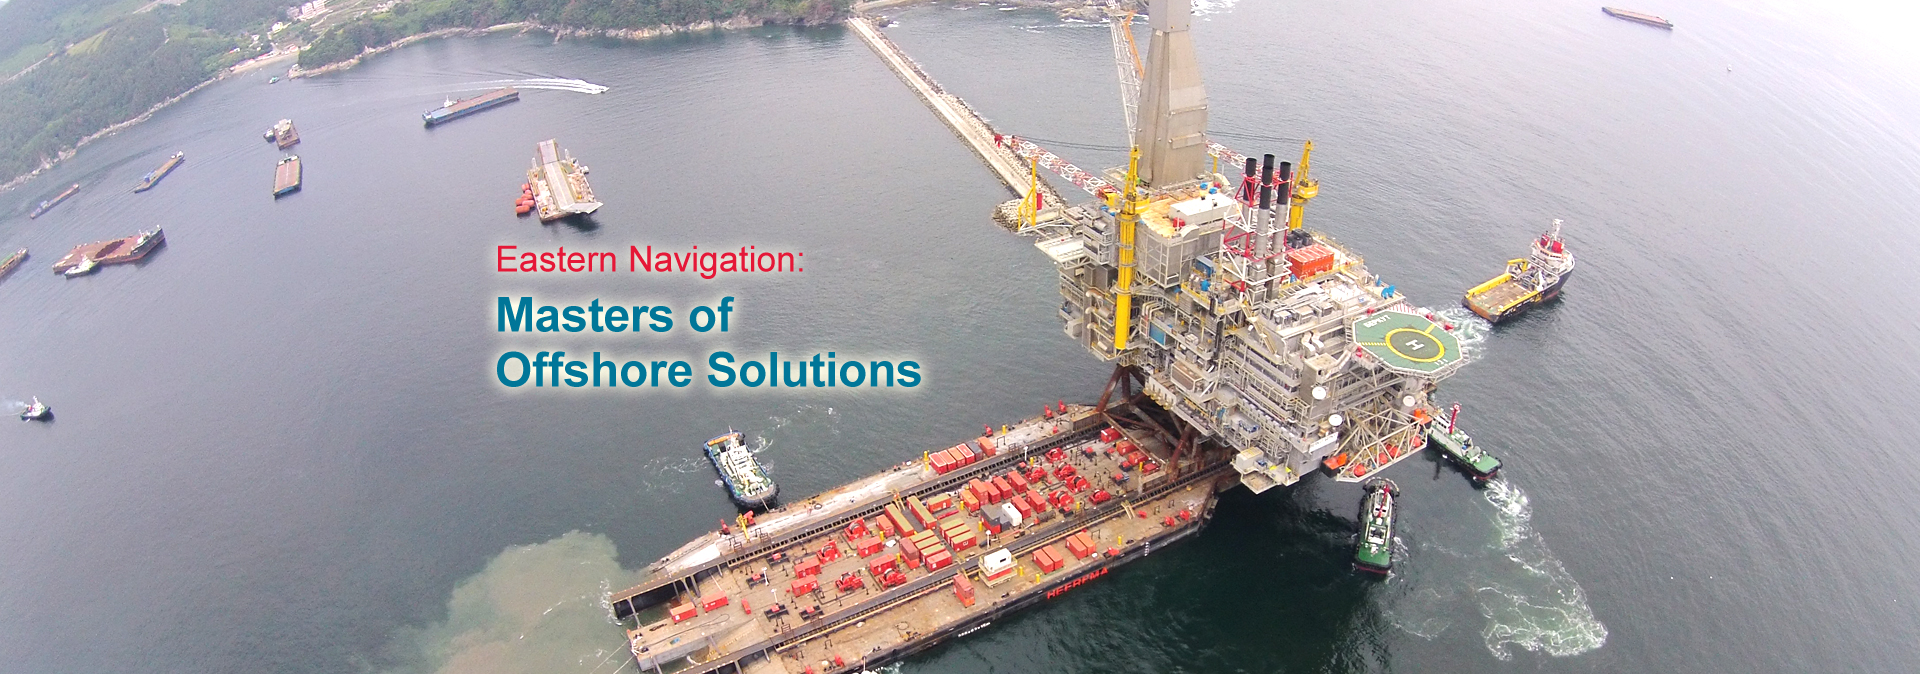 http://easternnavigation.com/our-solutions/our-capabilities/